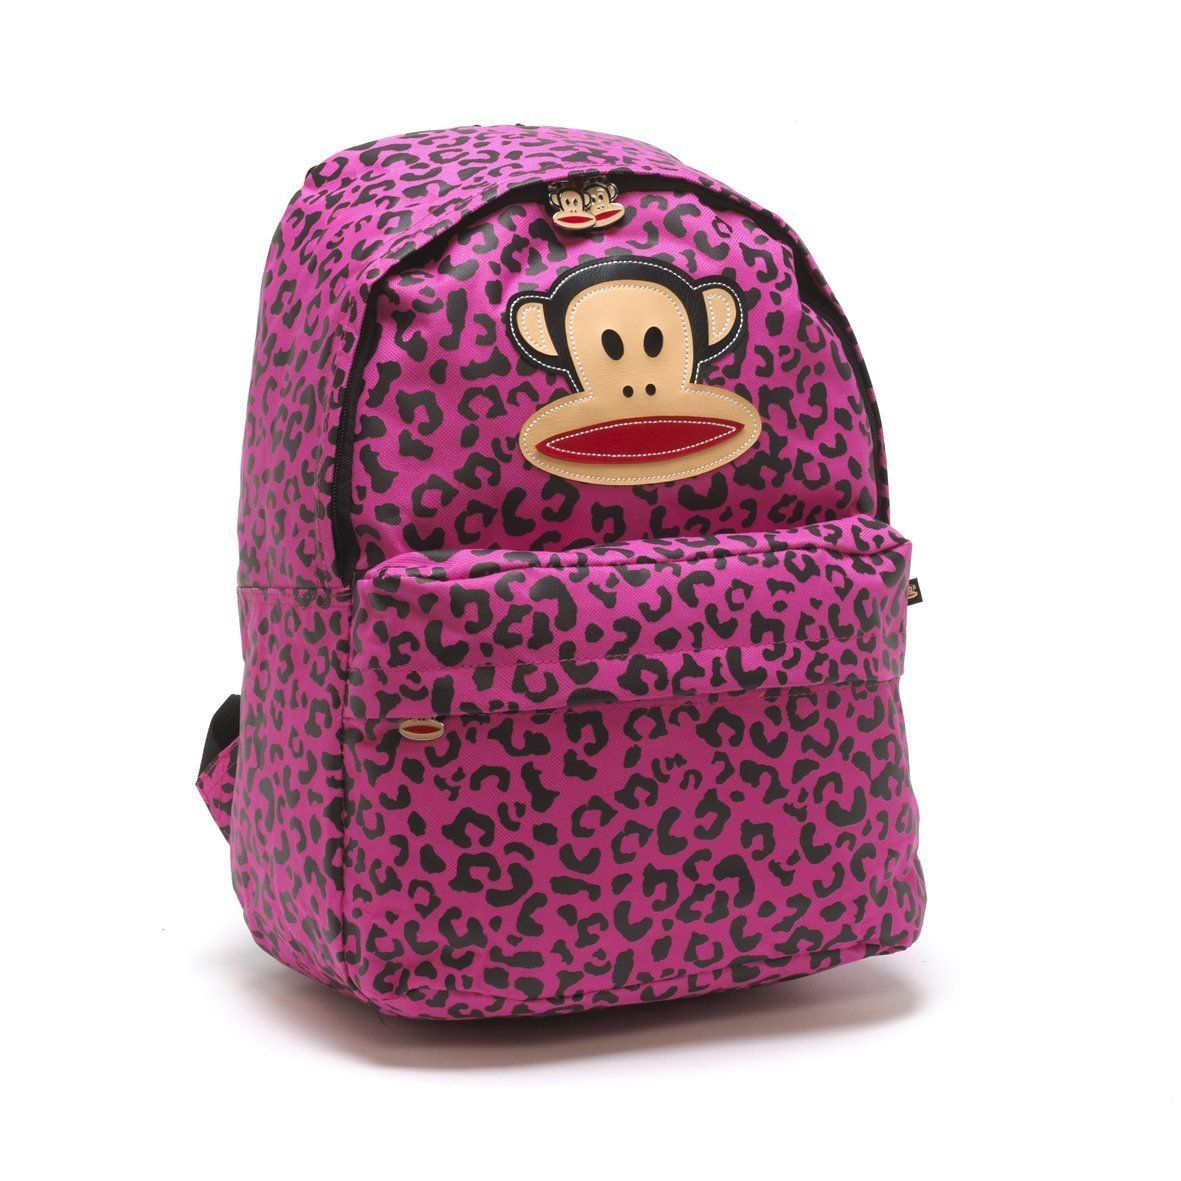 99973687f Paul Frank School Backpack Rucksack - Leopard Print Pink | JUNGLE ...